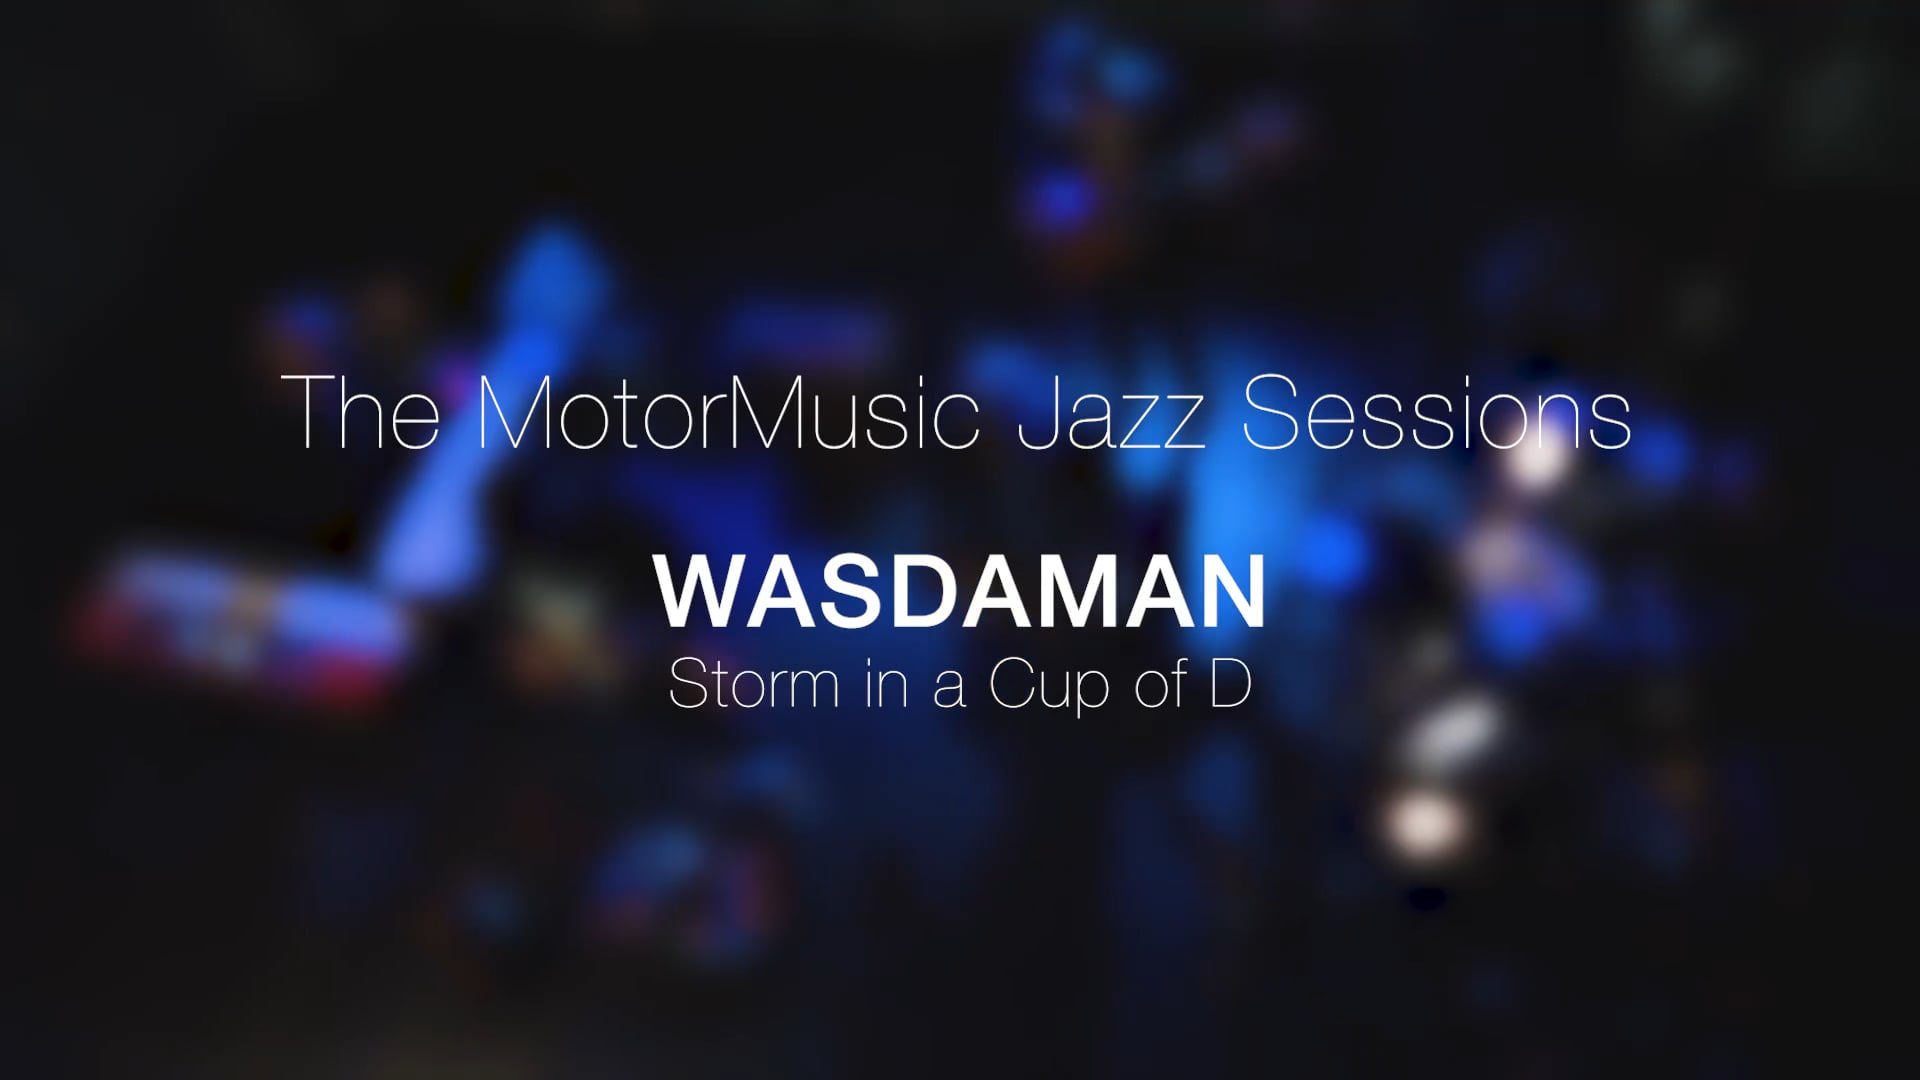 Wasdaman - Storm in a cup of D (Teaser)